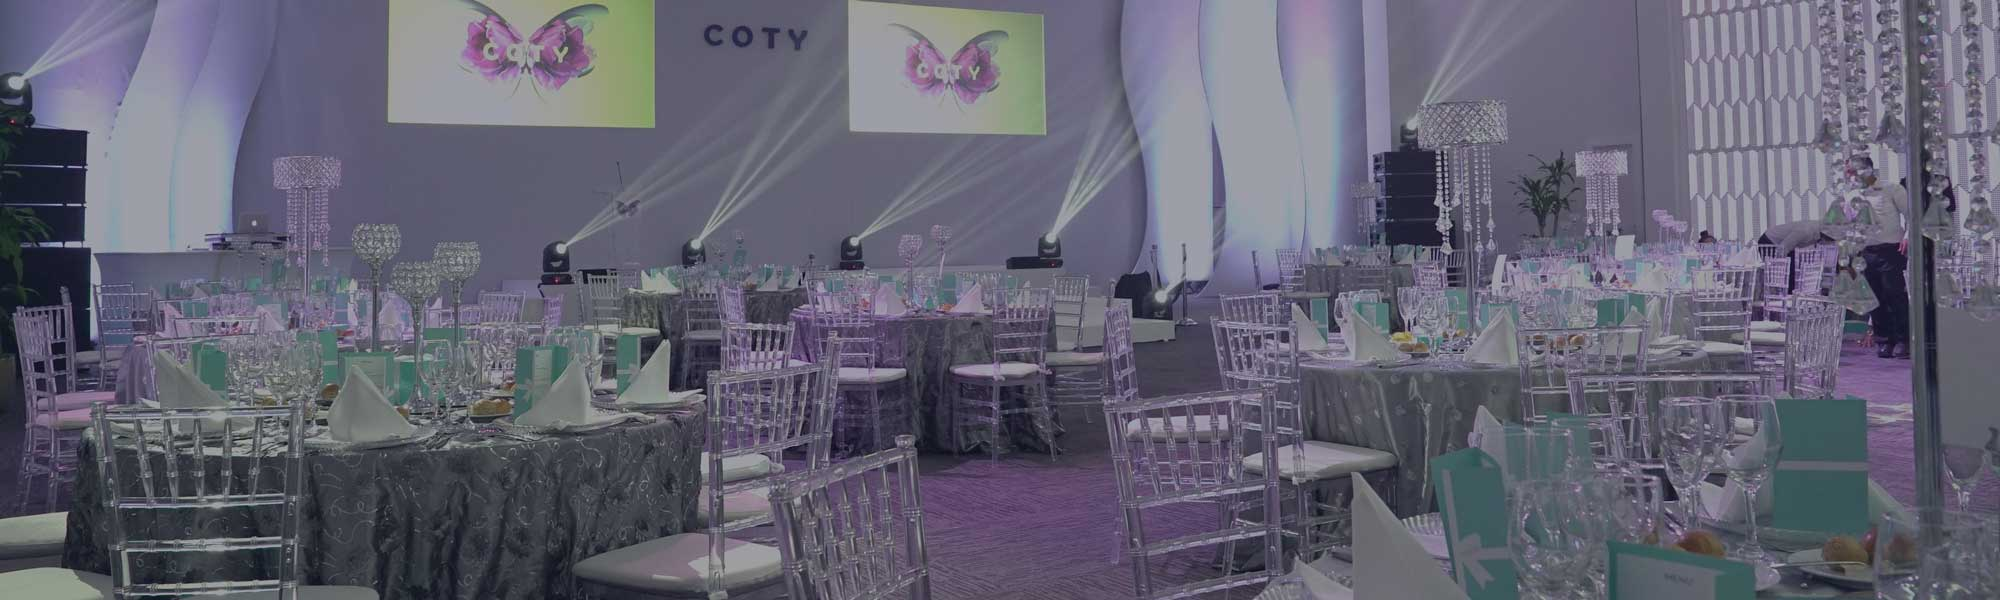 COTY event